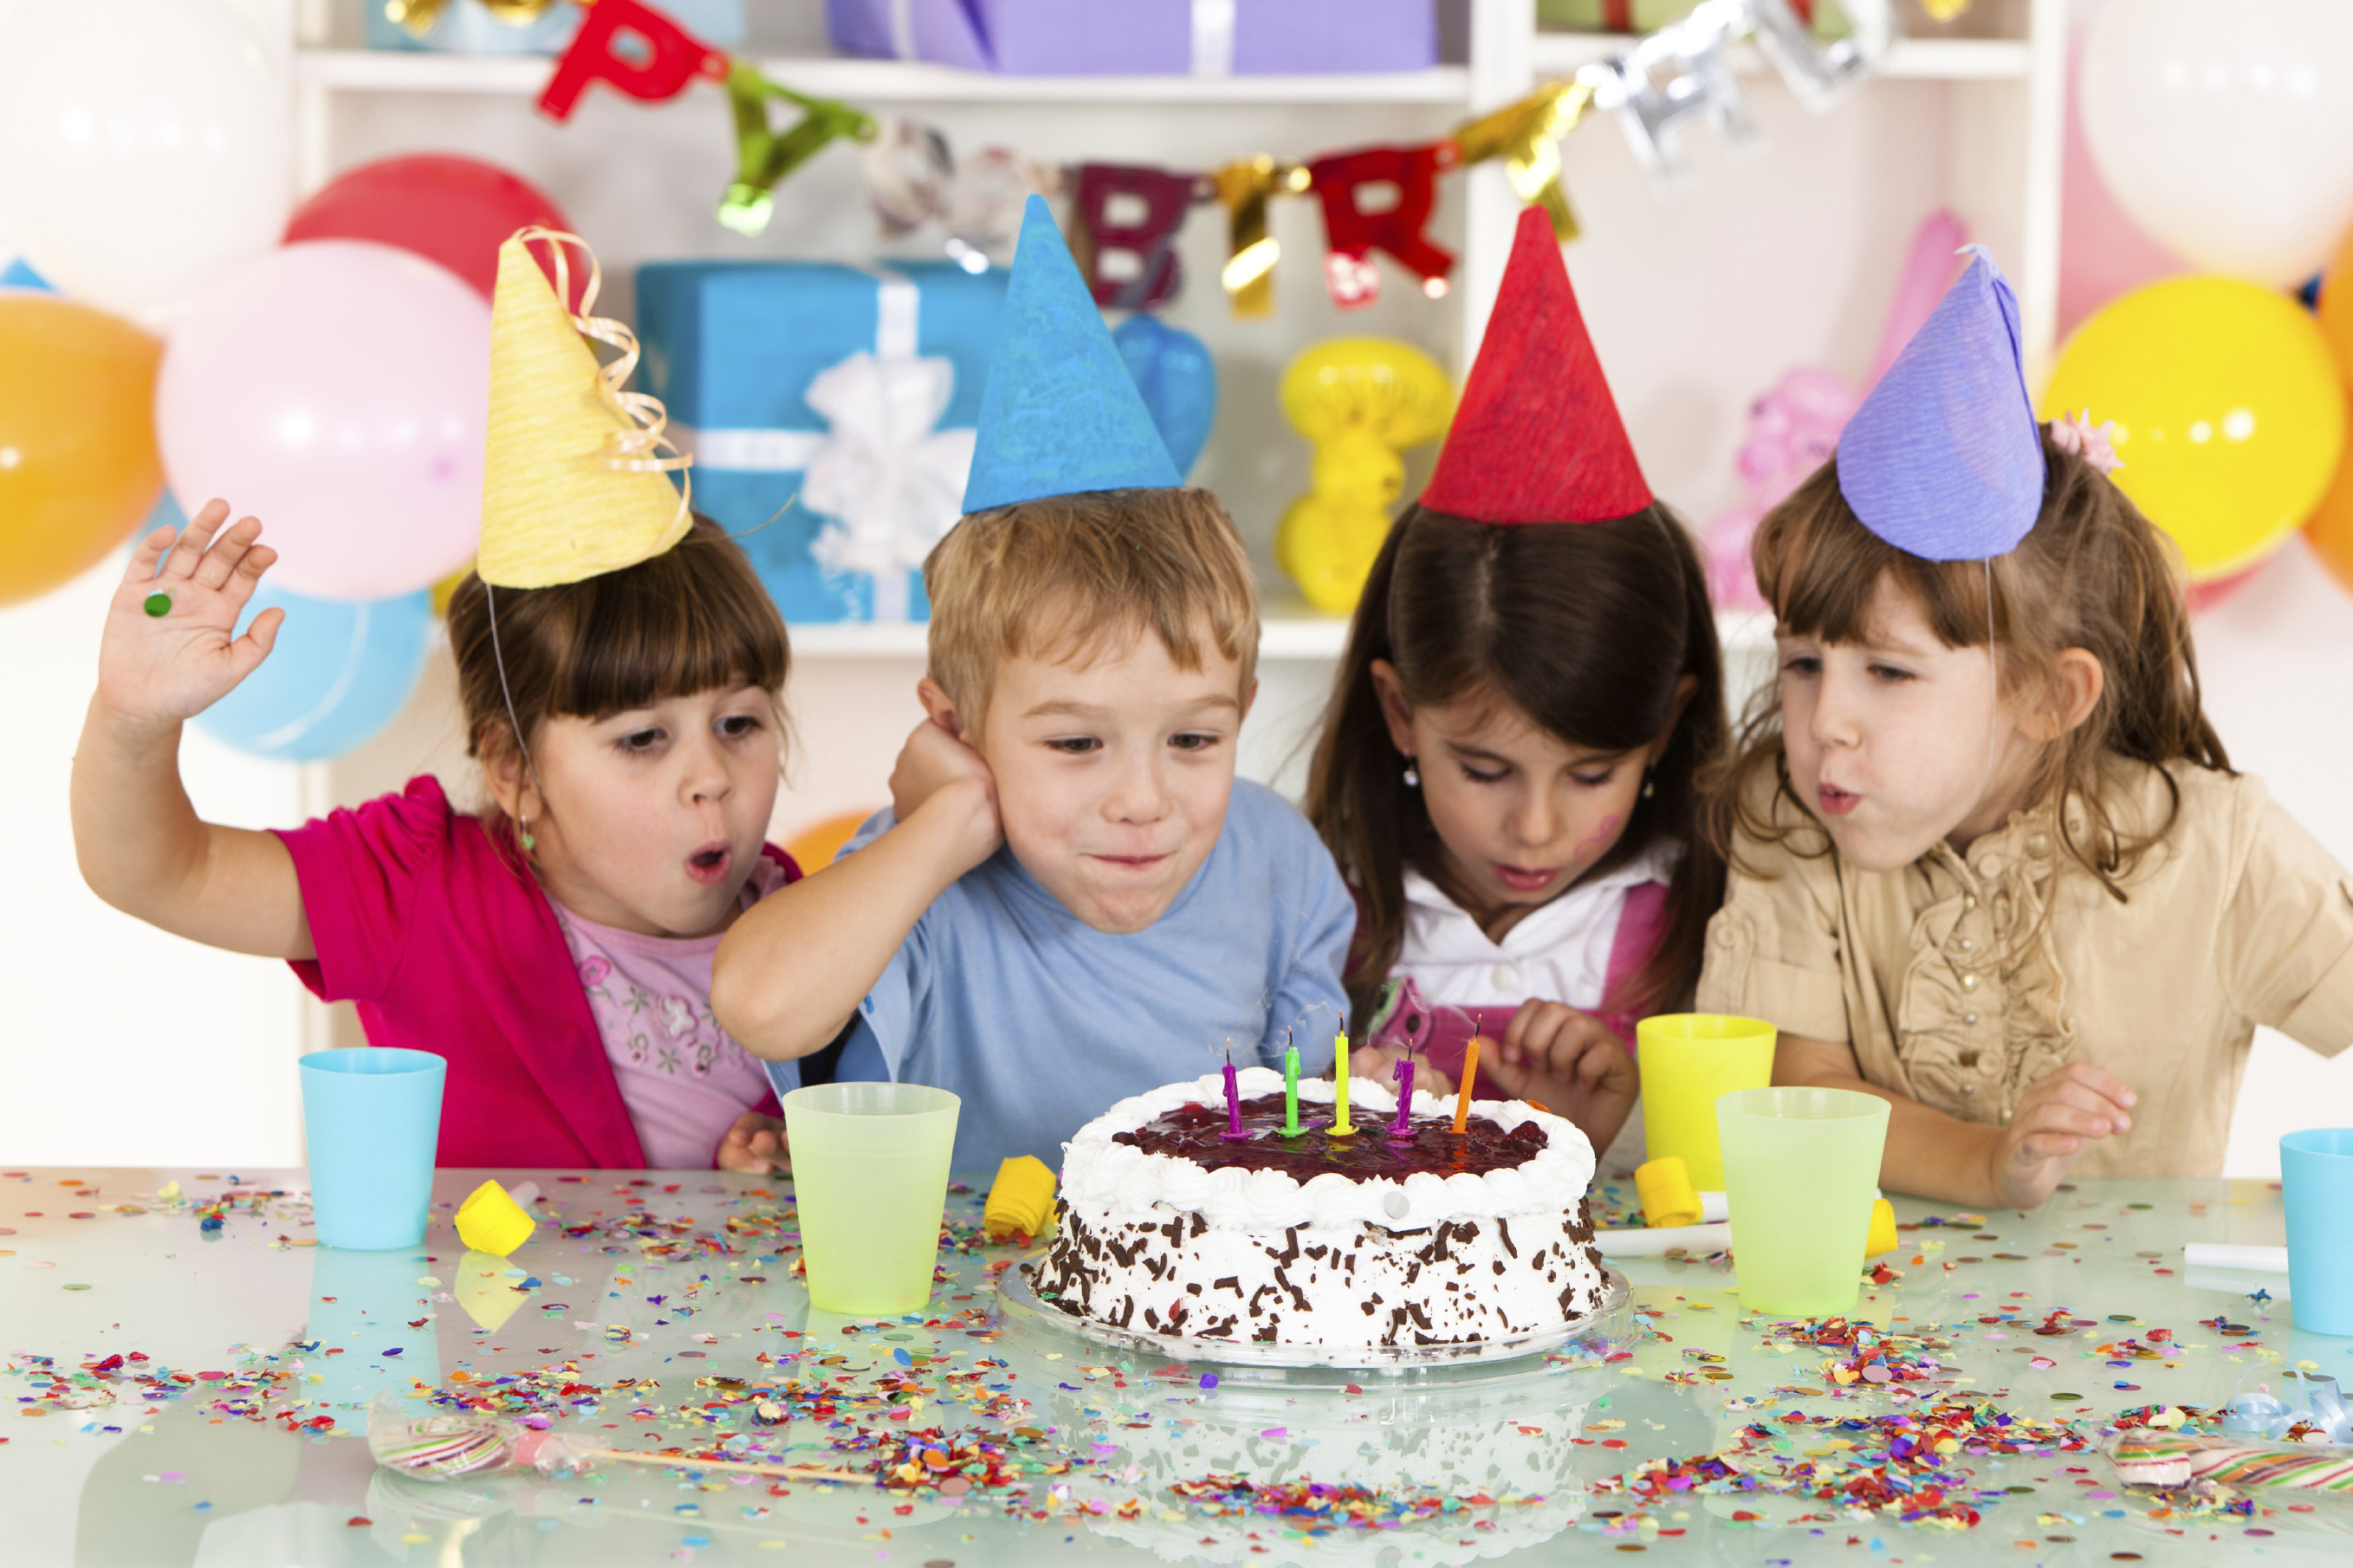 Best ideas about Kids Birthday Party . Save or Pin Kids Birthday Parties Inflatable Obstacle Course Now.